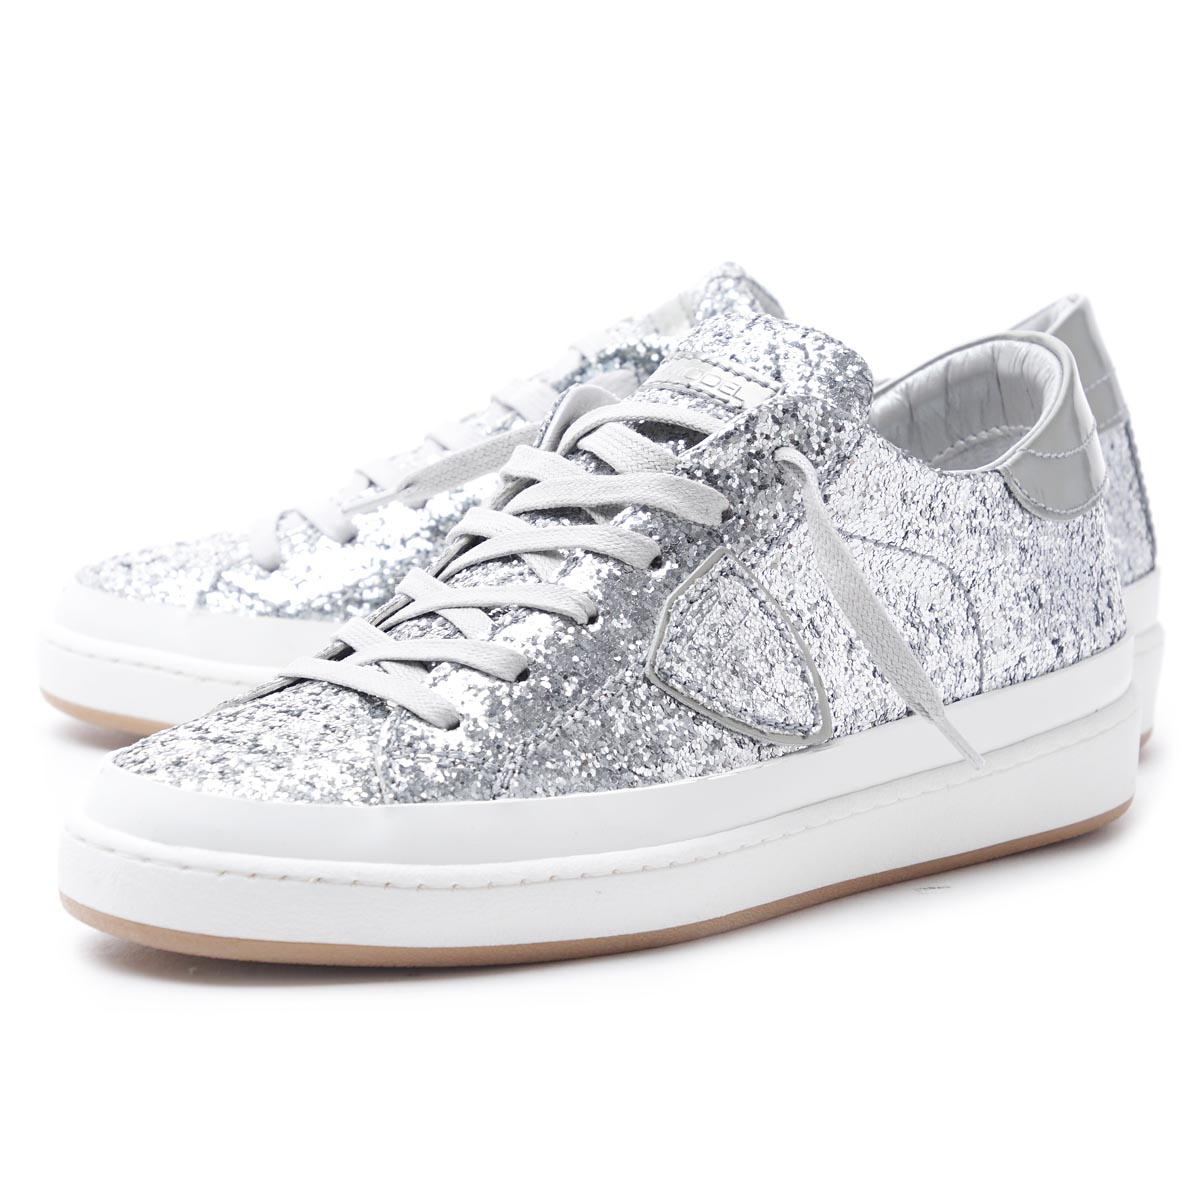 Philippe model Paris glitter sneakers 5SvqgzTyA1